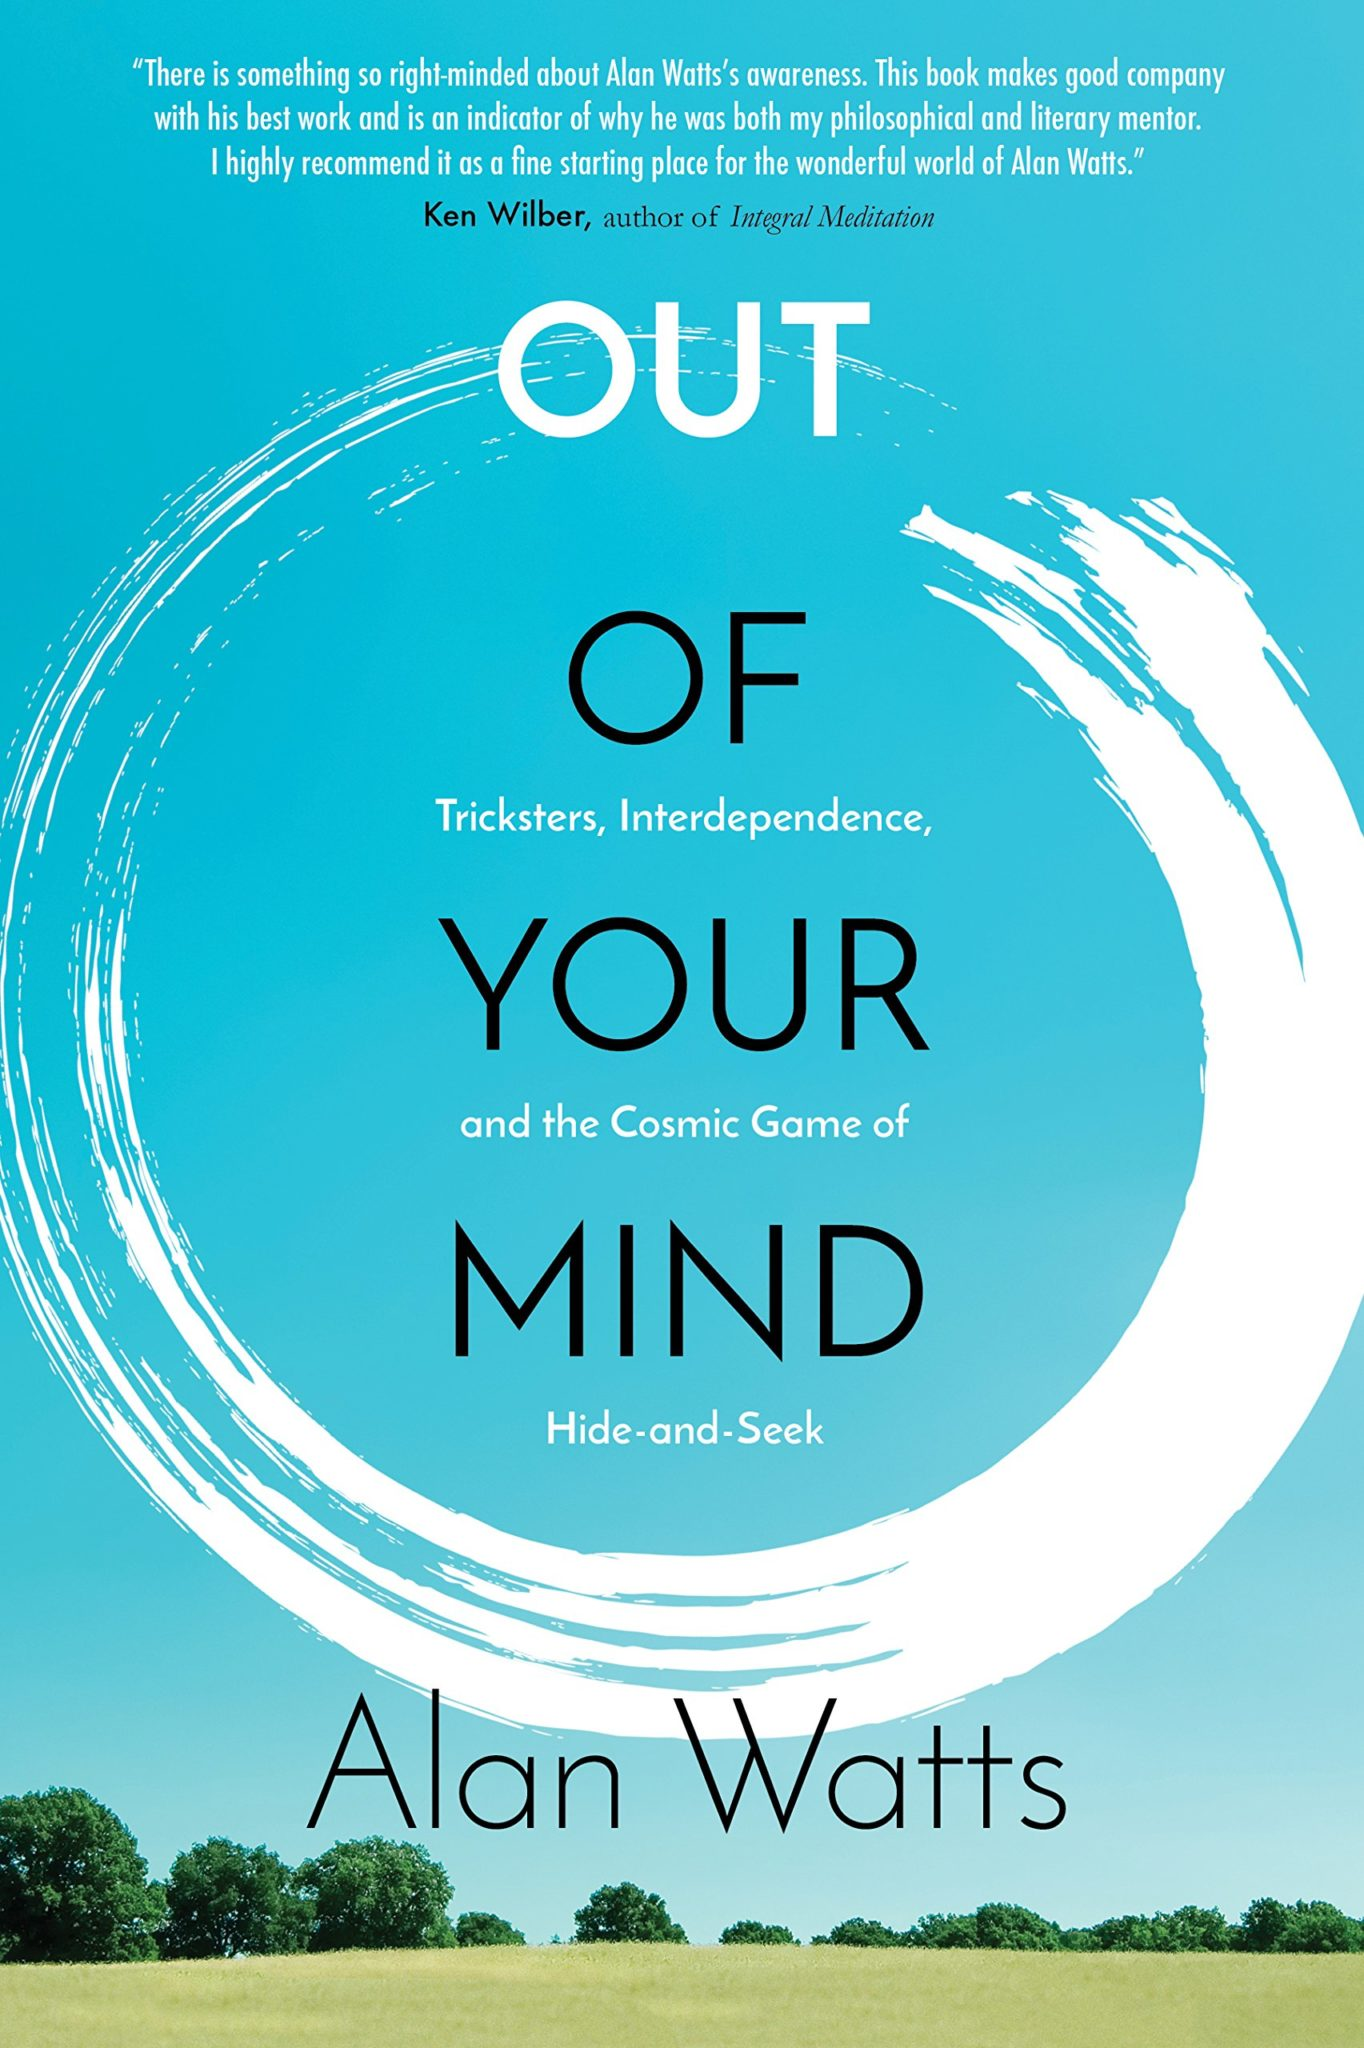 out-of-your-mind-meditation-book-alan-watts